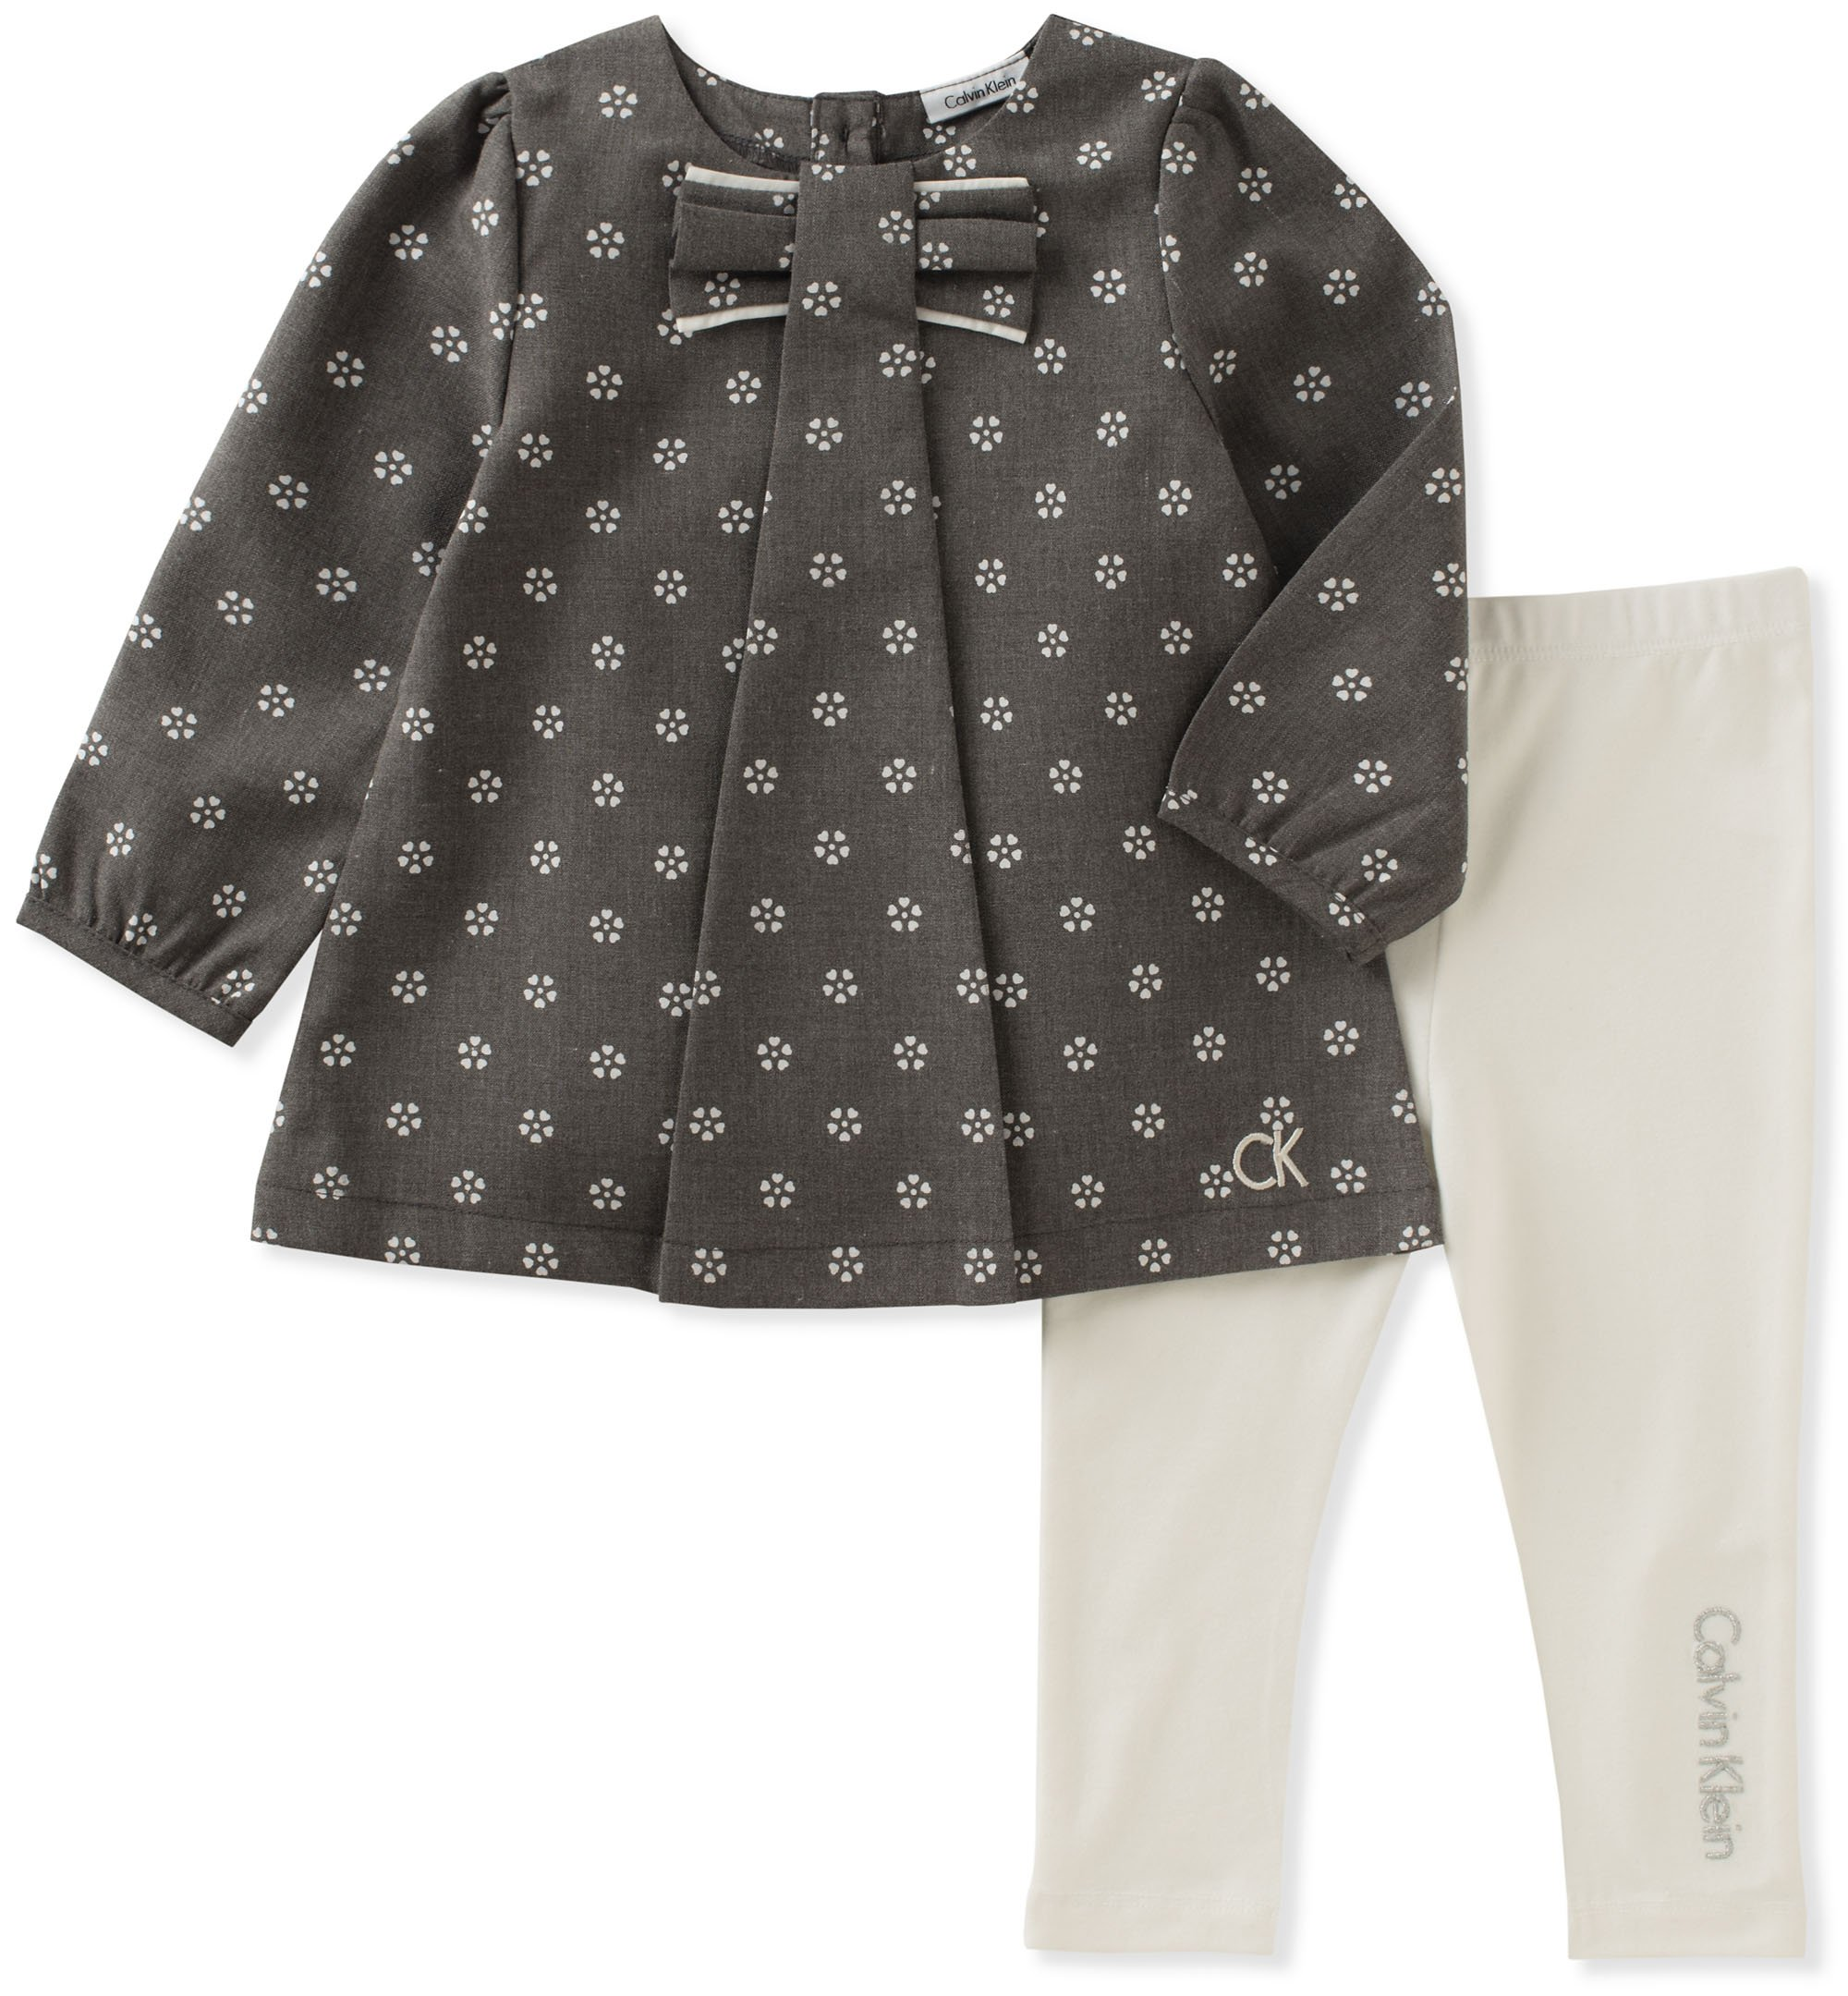 Calvin Klein Baby Girls' Tunic Legging Set, Grey/Vanilla, 3-6 Months